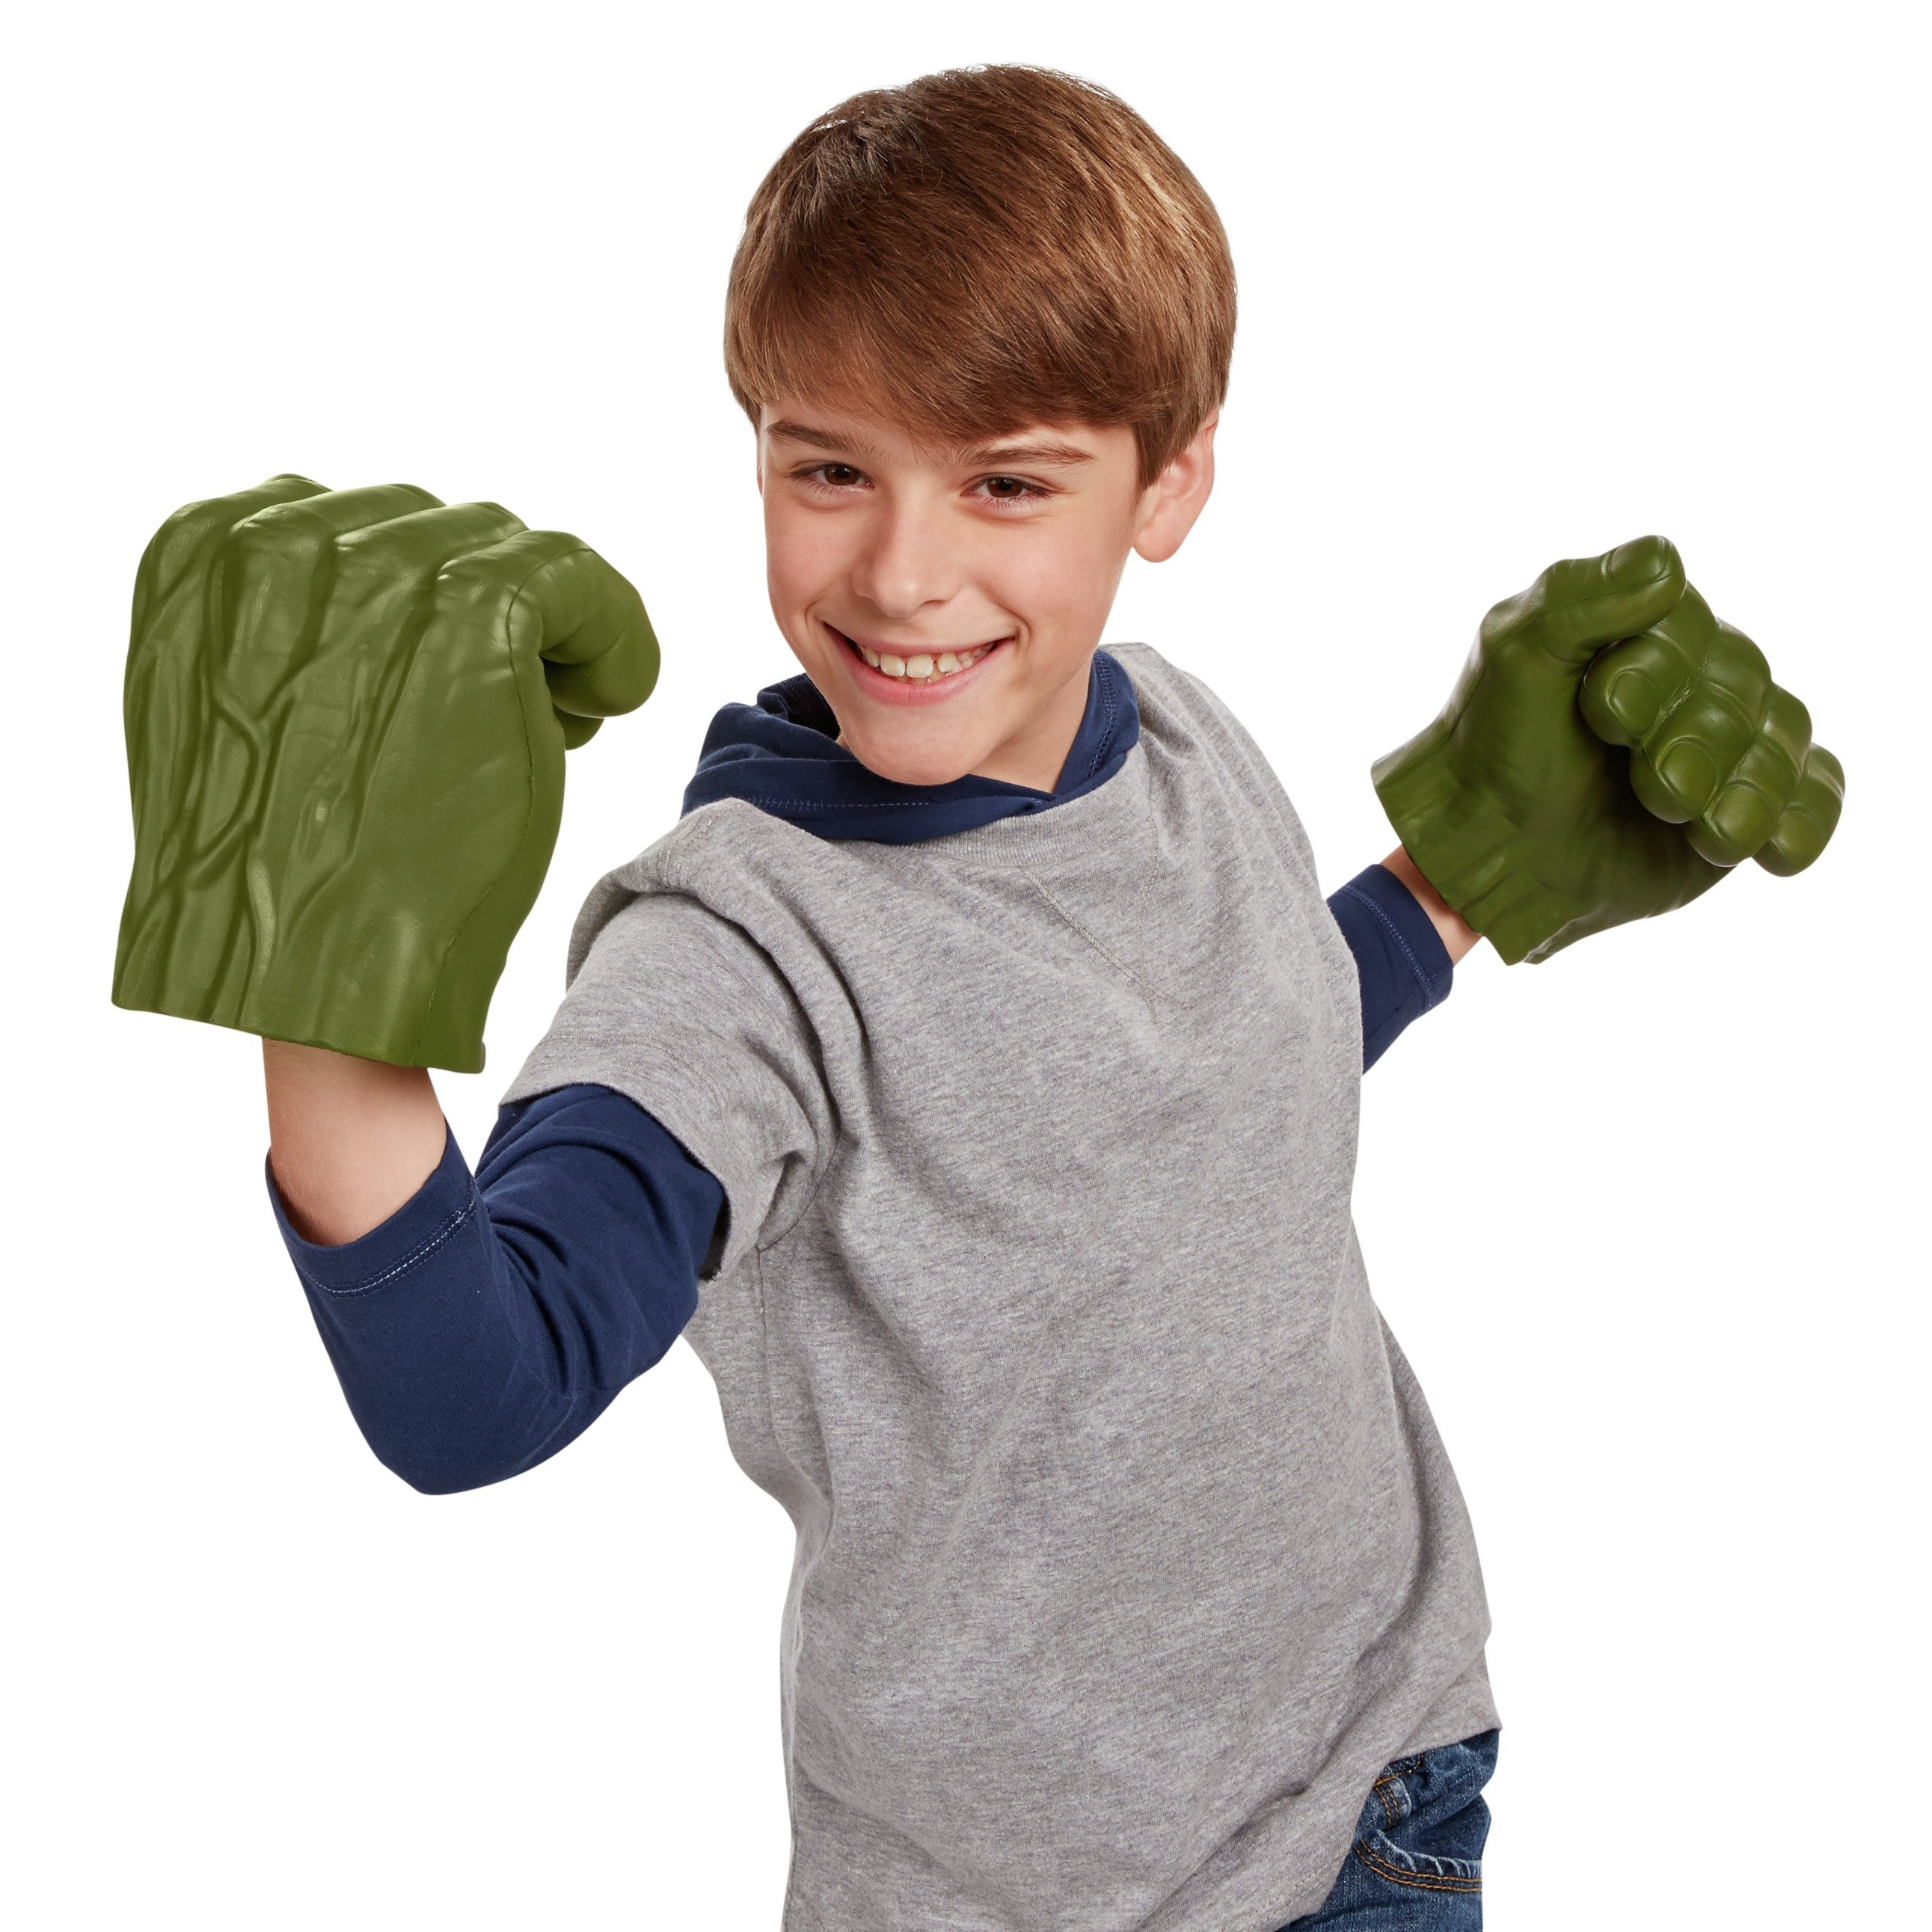 Image of Avengers - Age Of Ultron Hulk Gamma Grip Fists